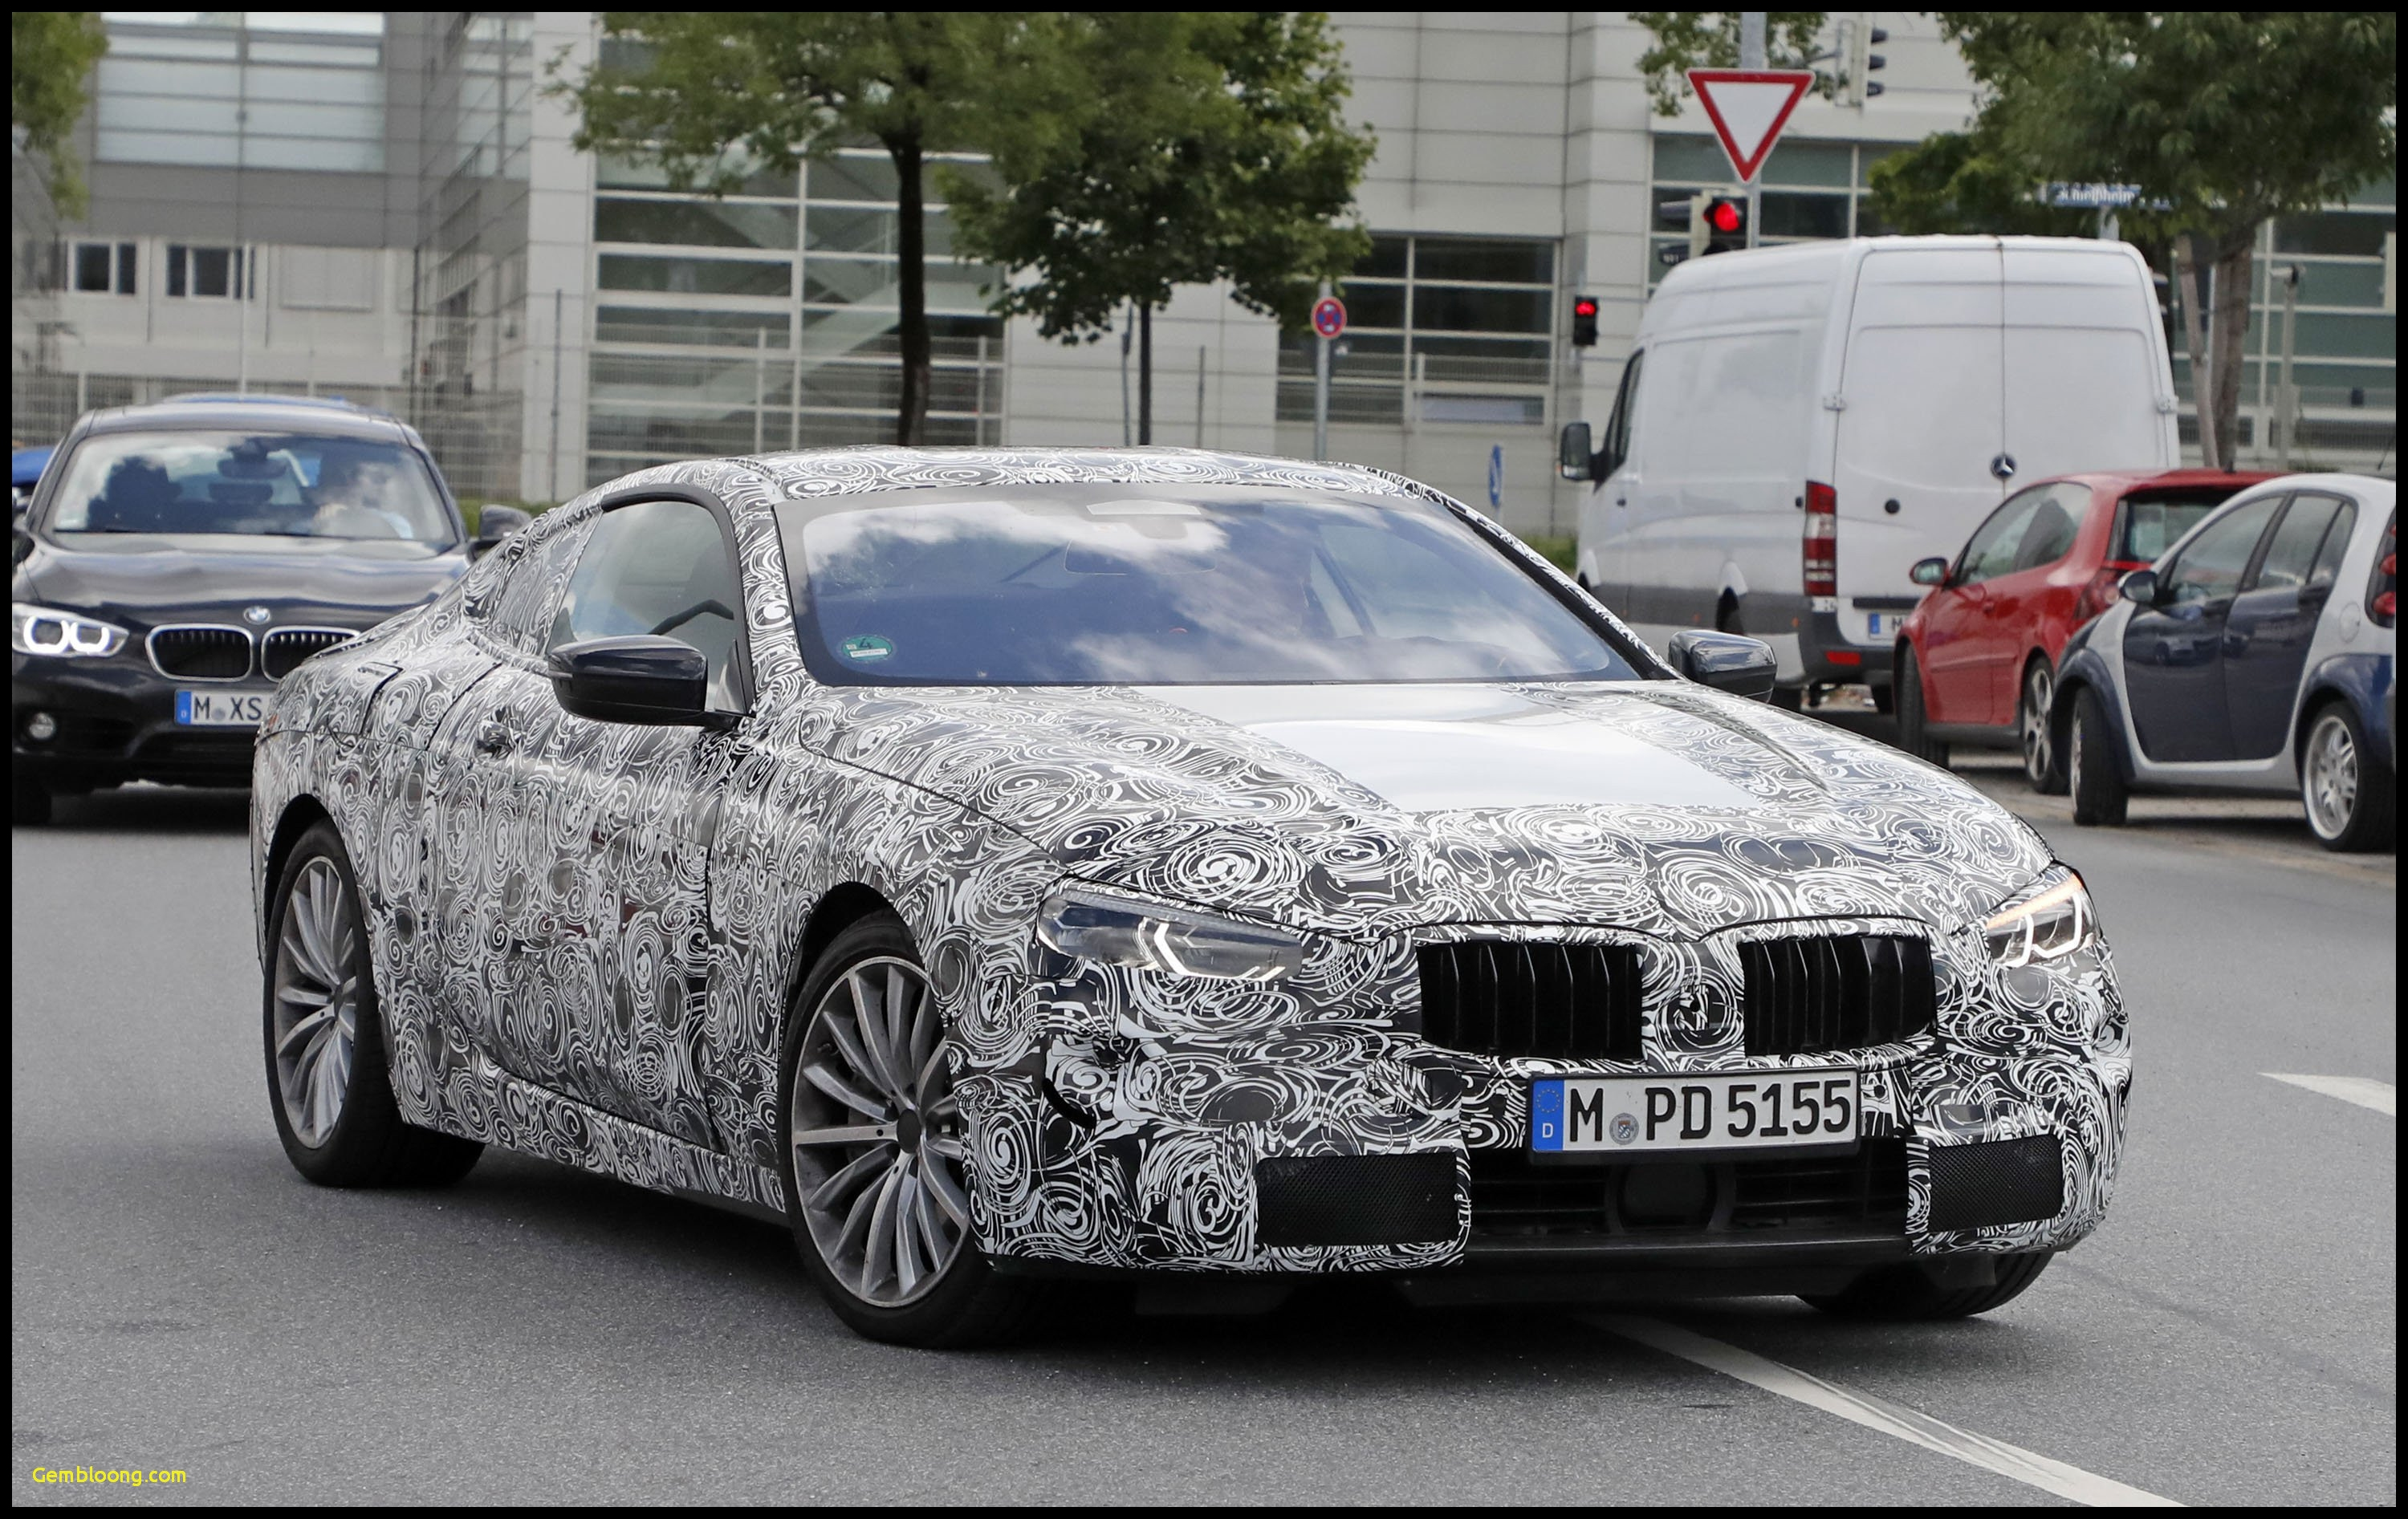 2019 Bmw 6 Series Specs and Review Bmw Series 7 2019 2019 Bmw 7 Series G11